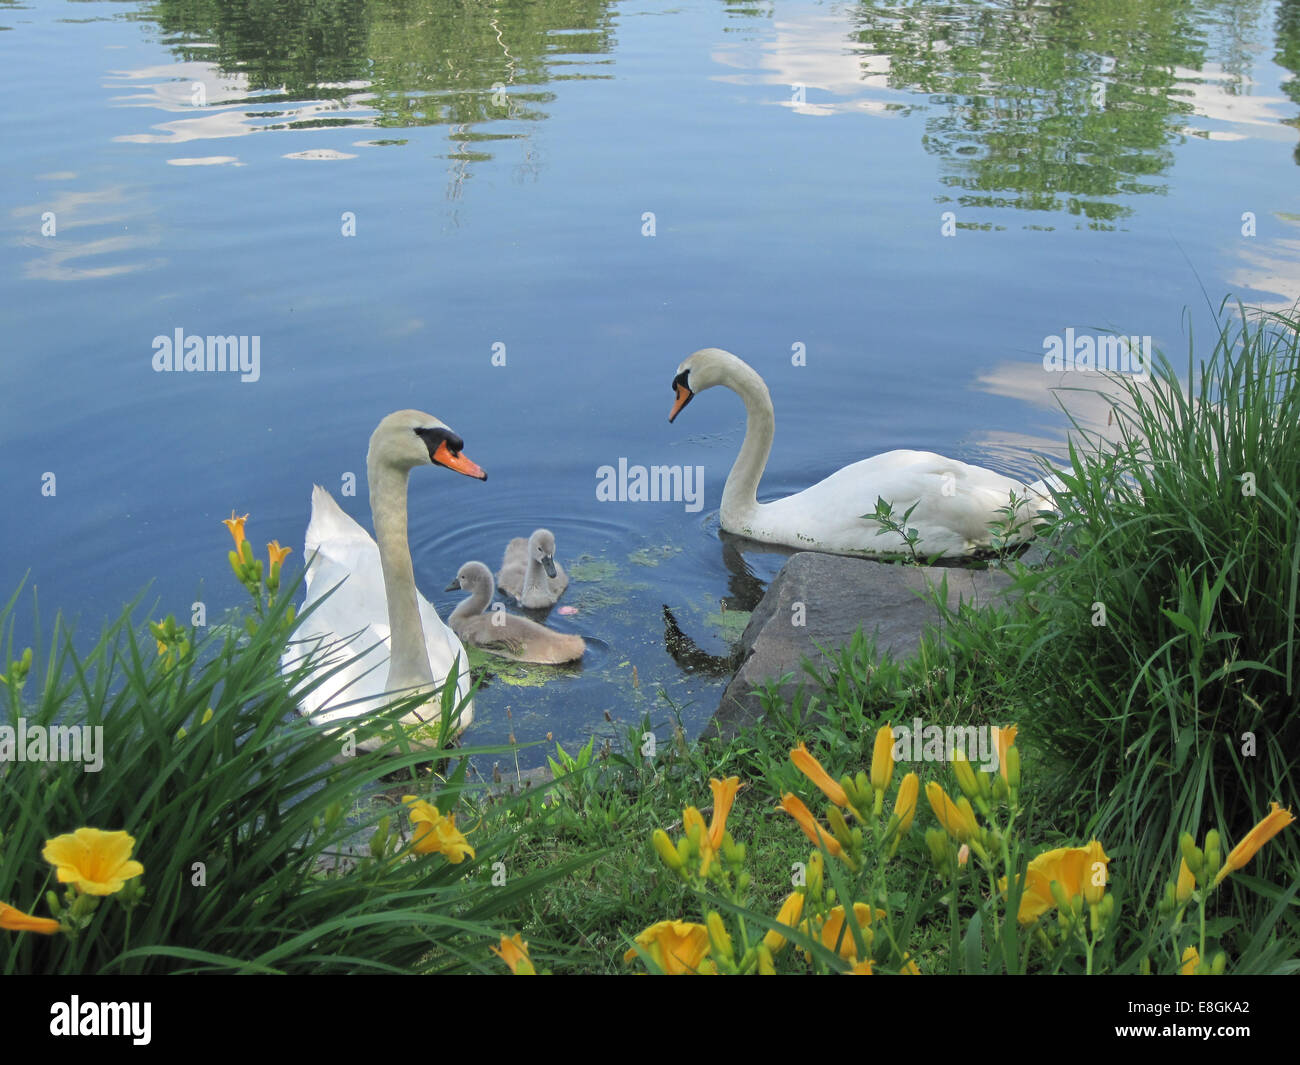 USA, New York State, New York City, Huntington, Adult swans with two cygnets at park - Stock Image